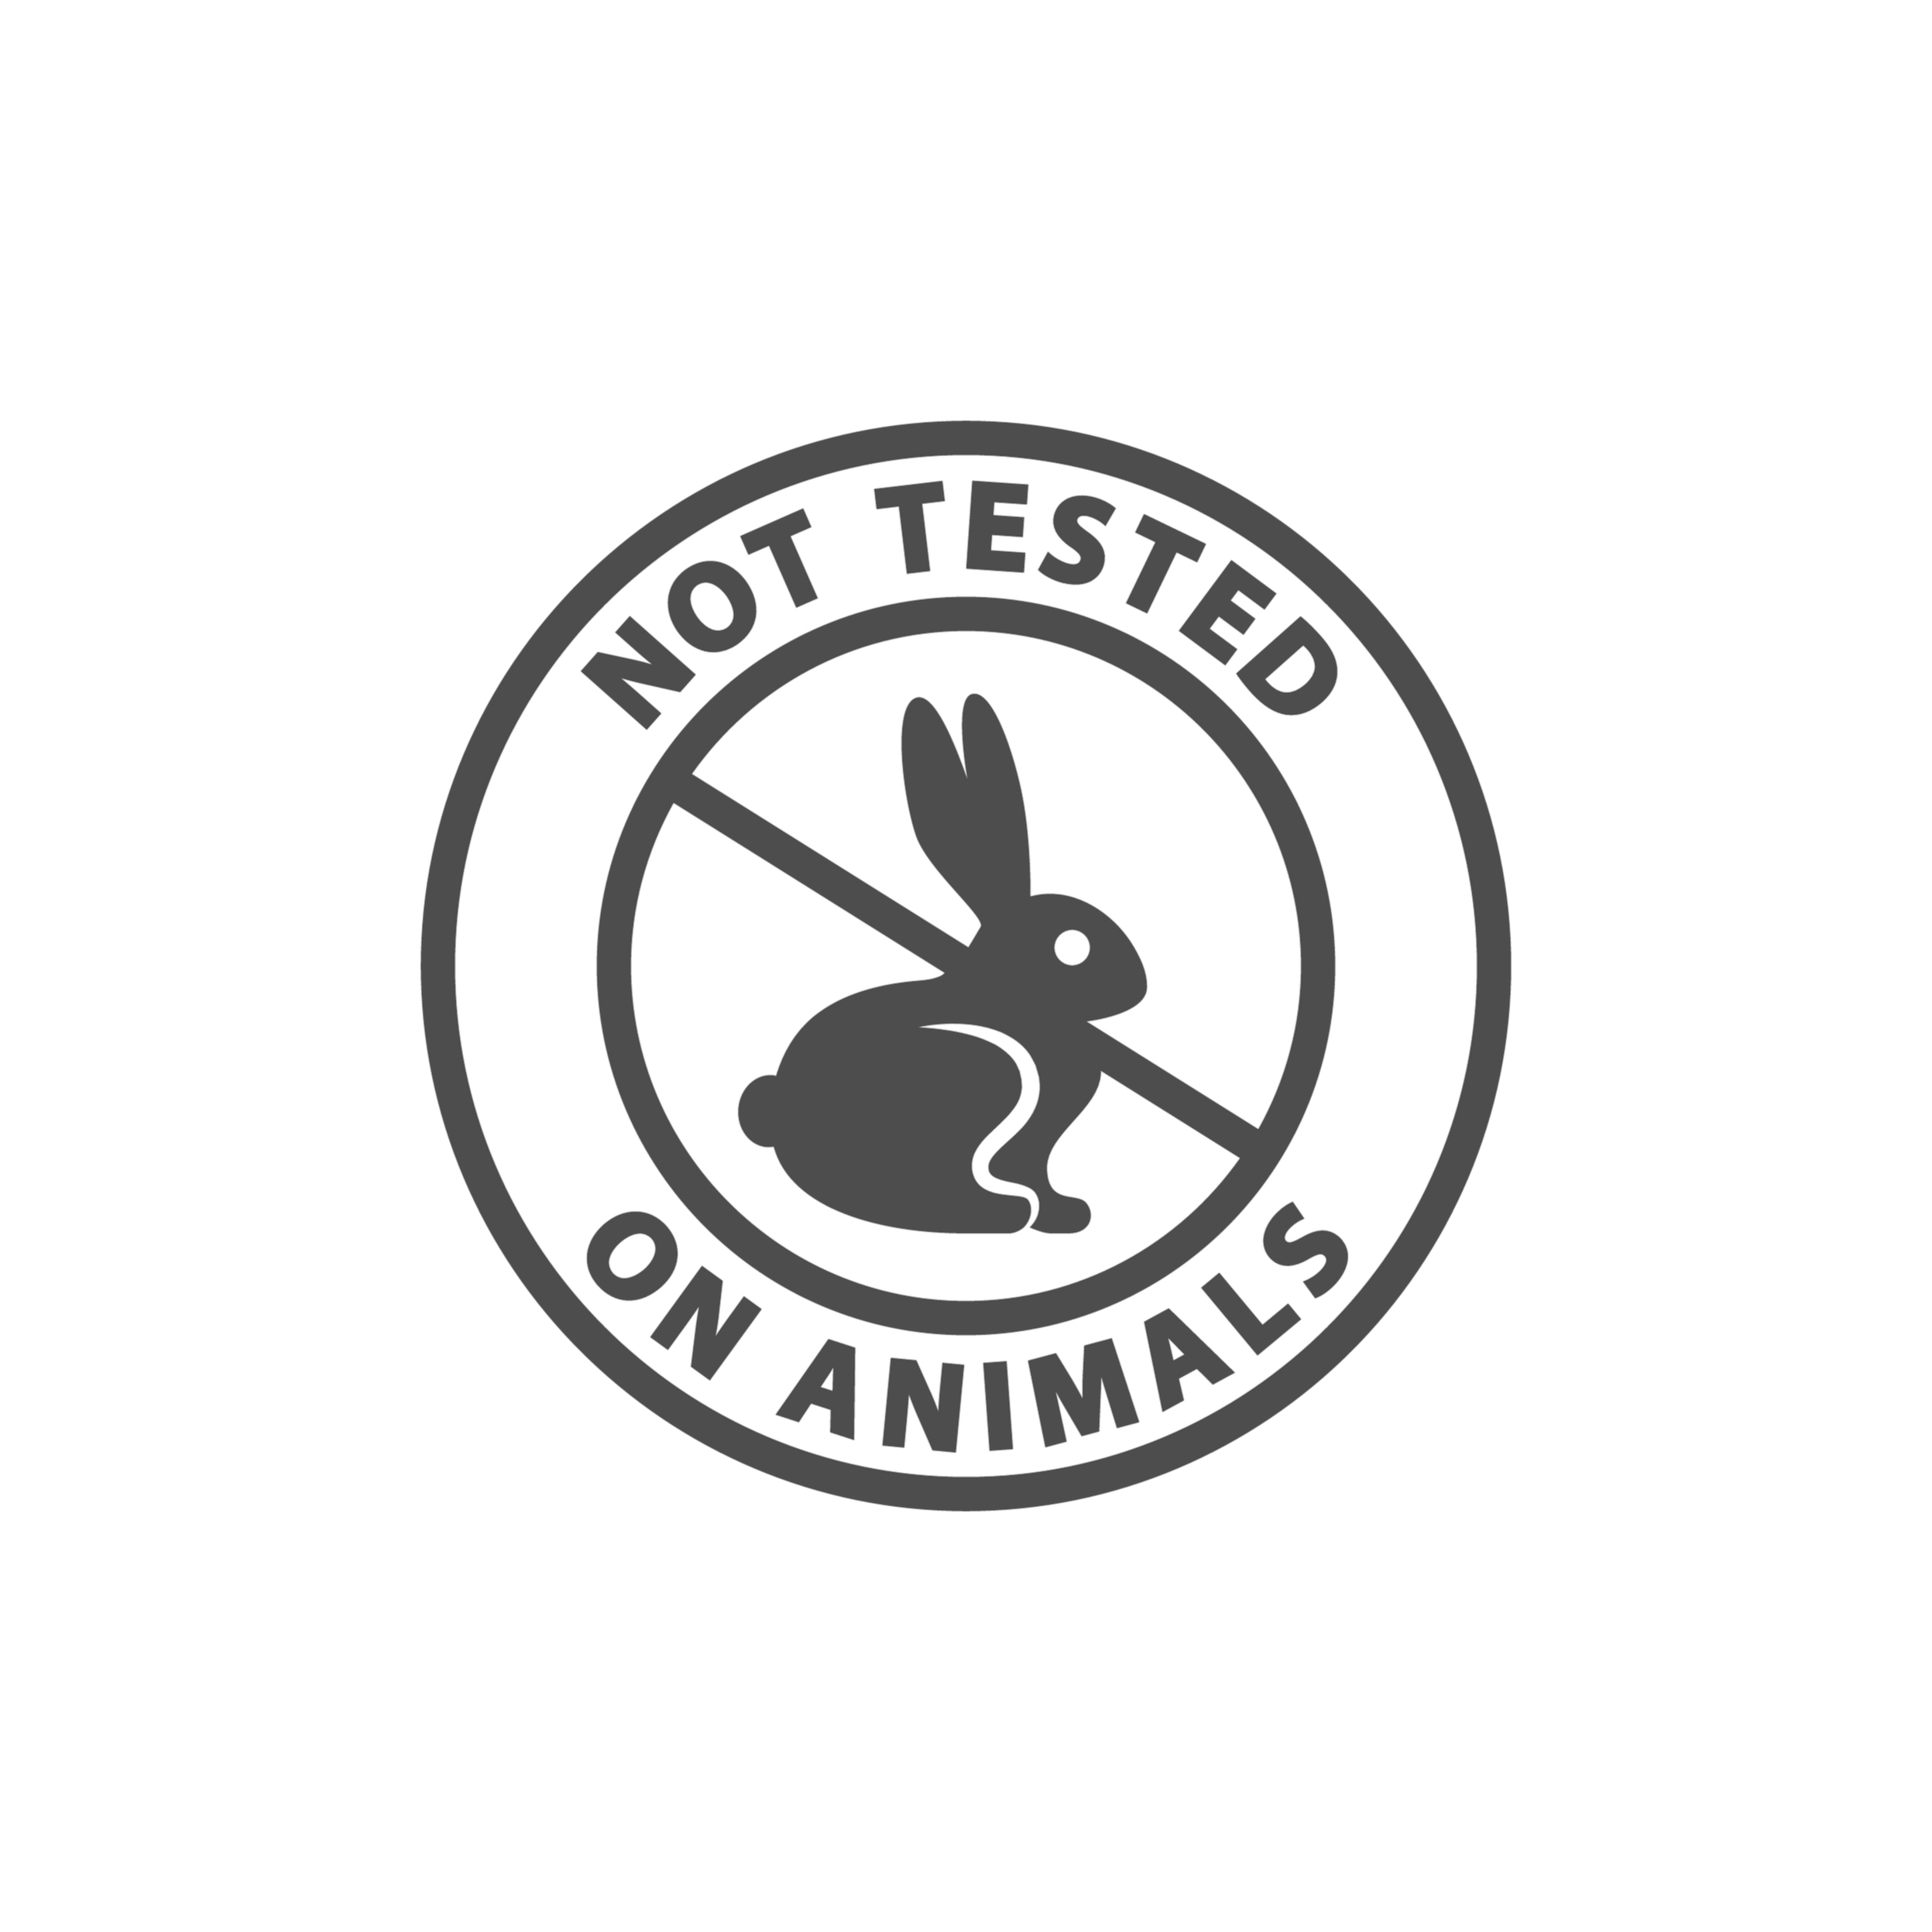 4_Not tested on animals